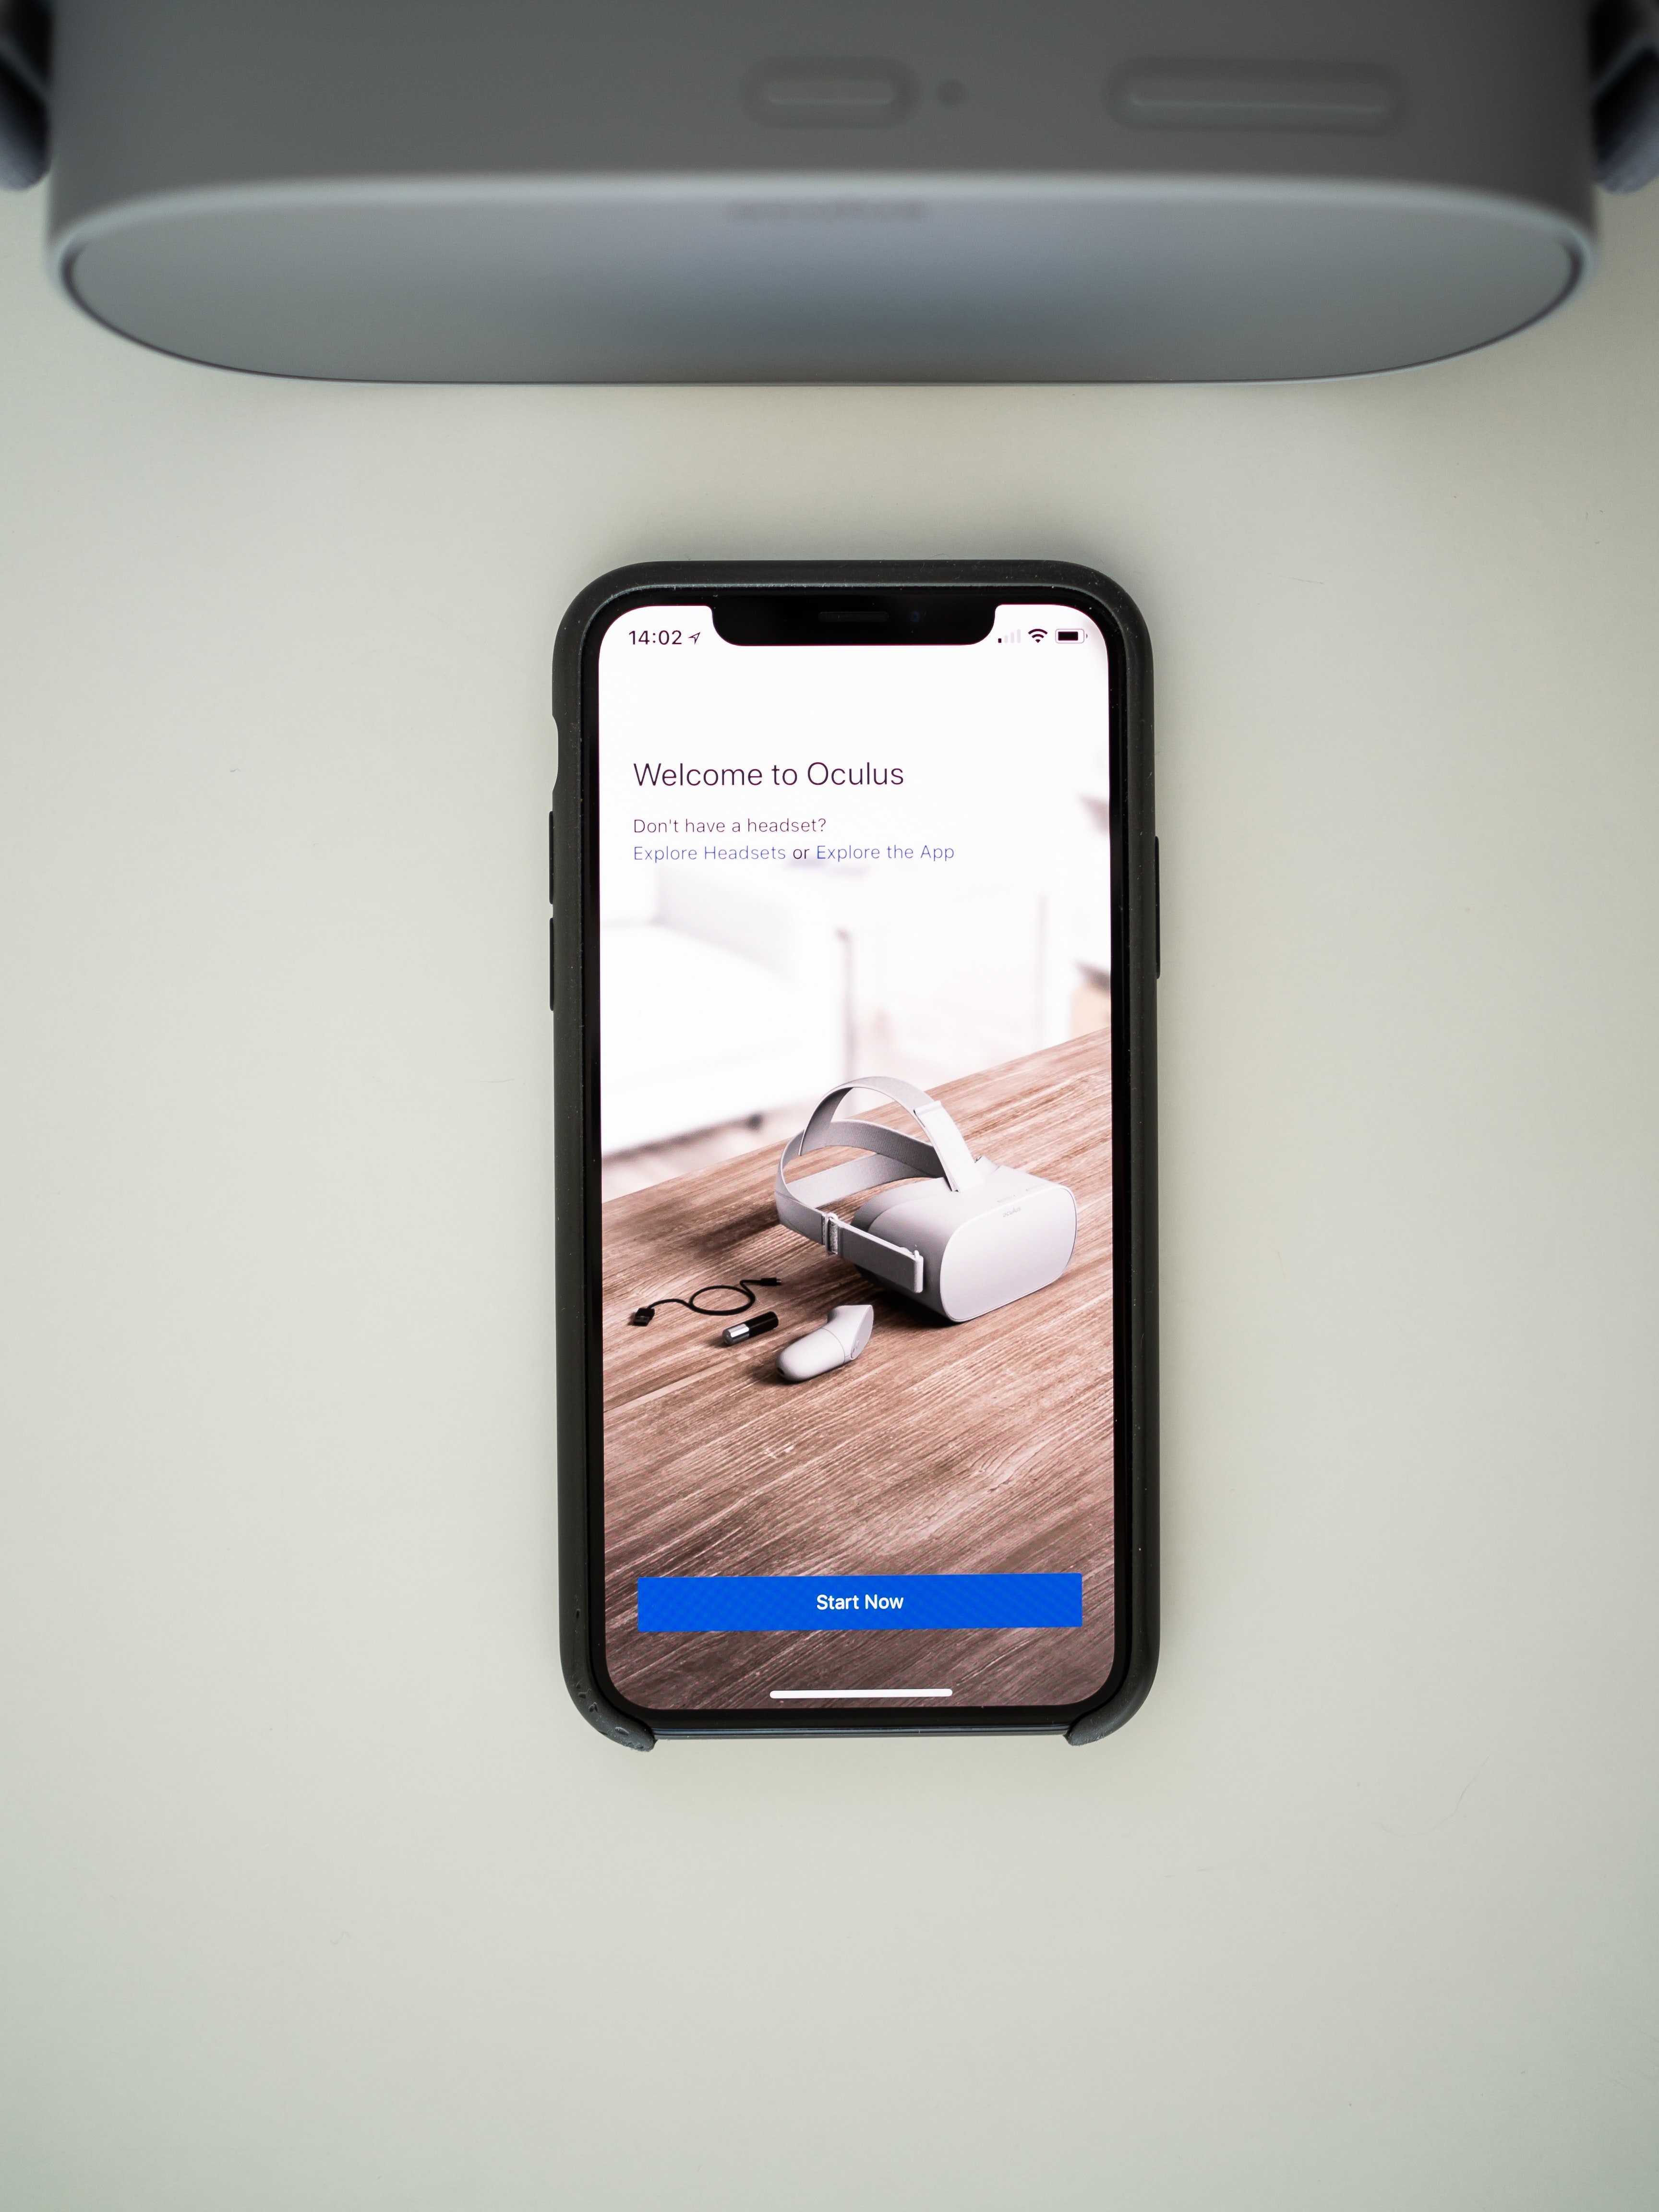 iPhone displaying Welcome to Oculus